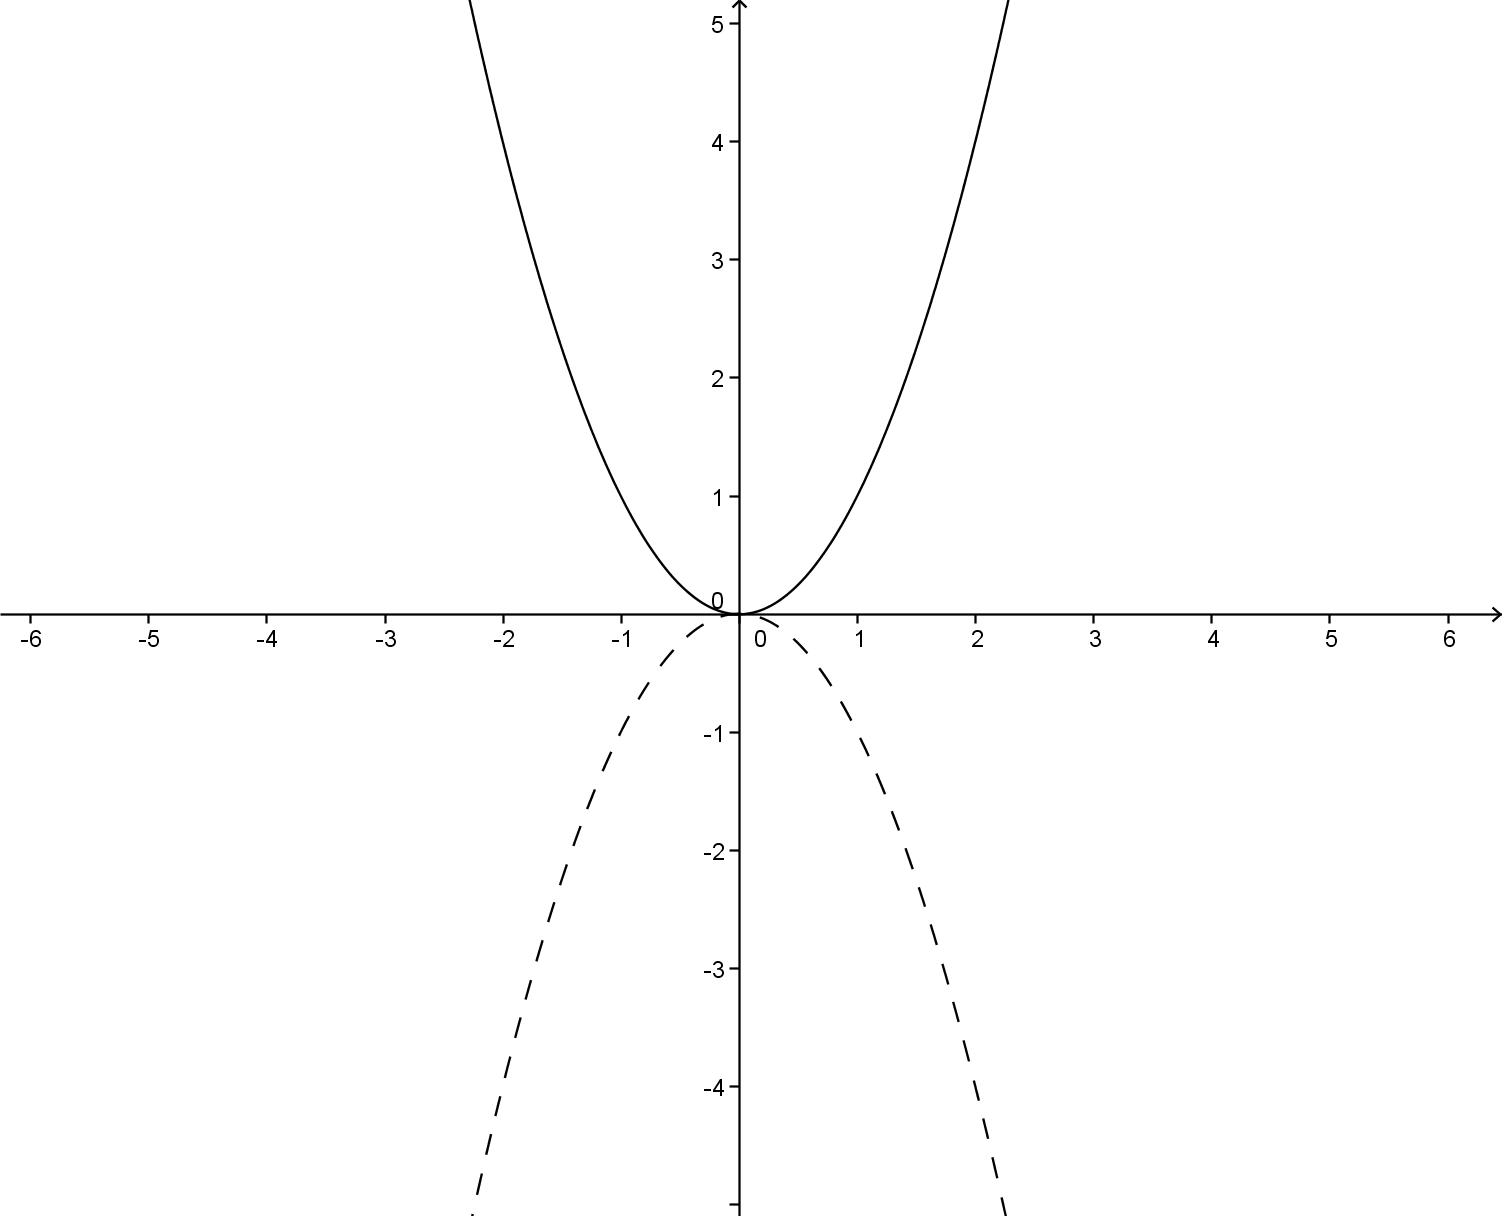 Graphs with a right Yaxis